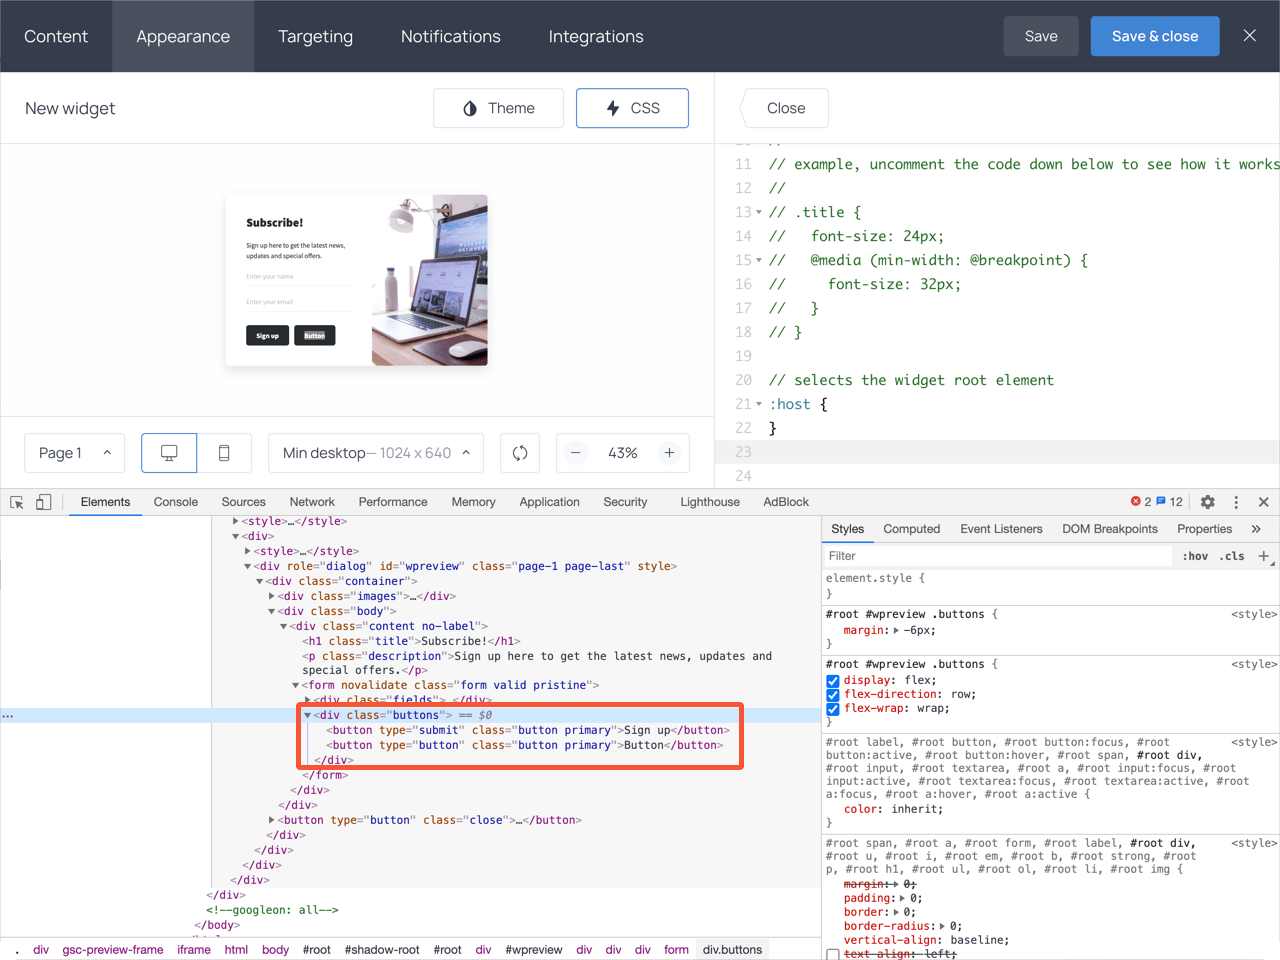 Inspecting buttons container in DevTools